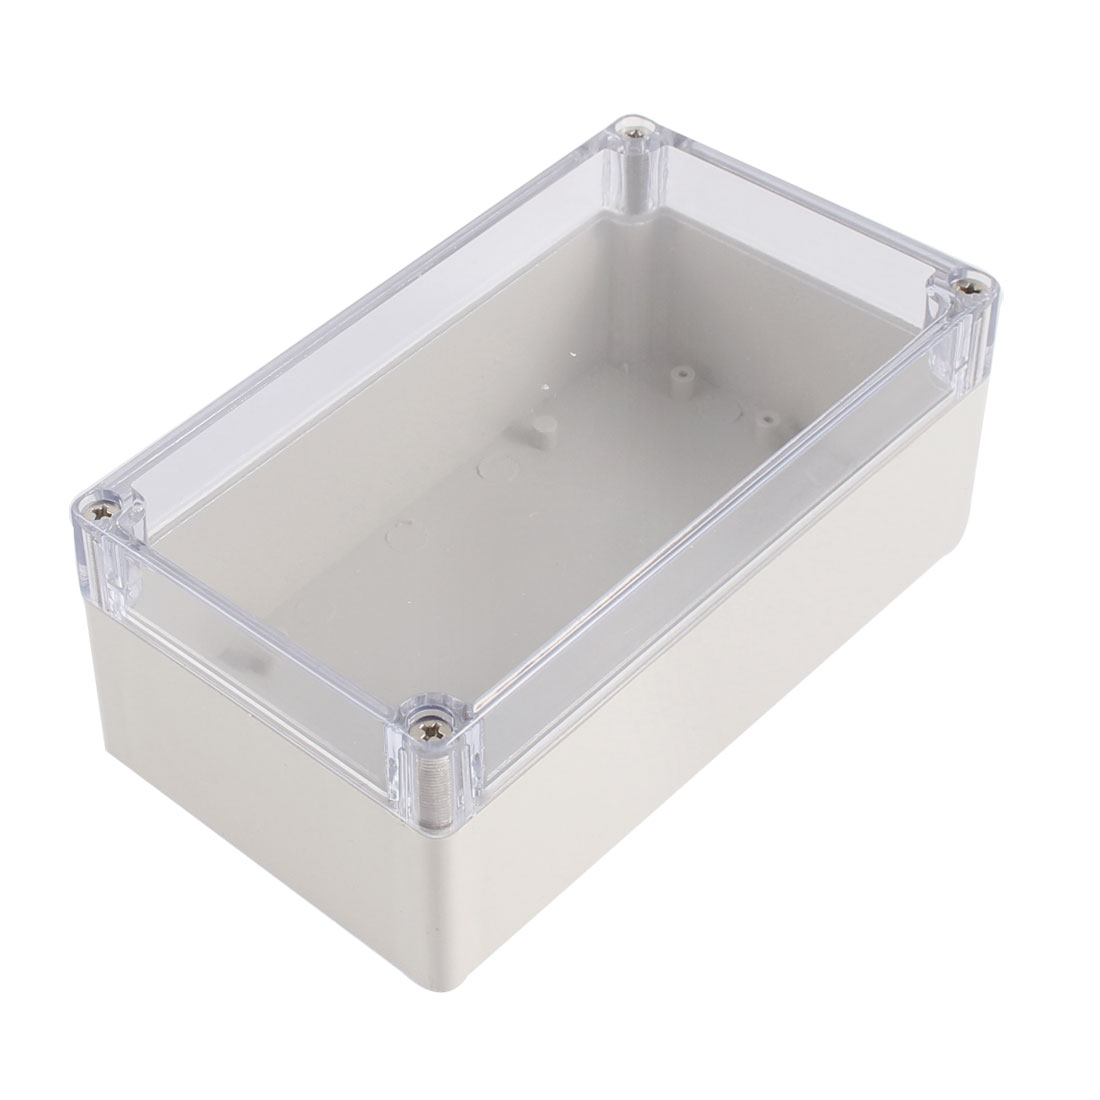 Dustproof IP65 Clear Cover Plastic Electronic Project Junction Box Enclosure Case 158 x 90 x 60mm